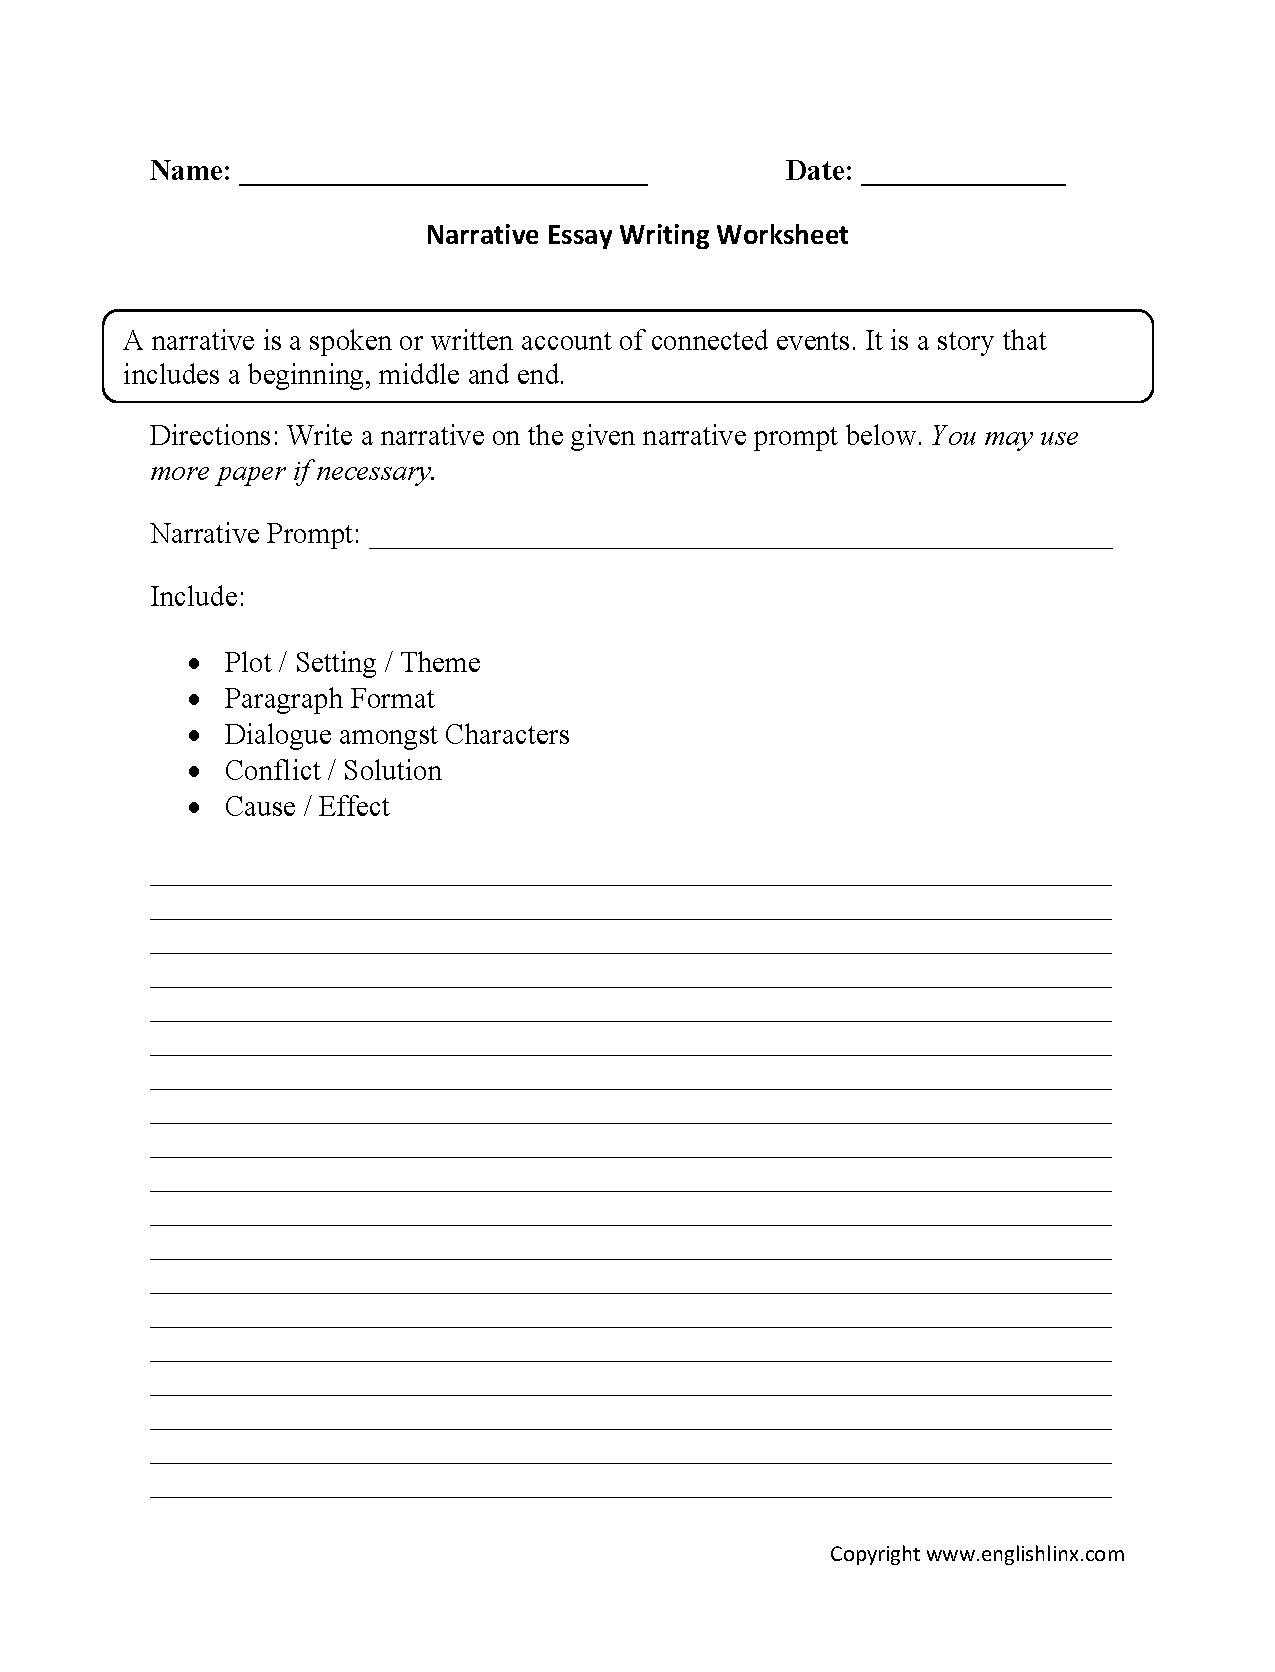 writing worksheets essay writing worksheets essay writing worksheets